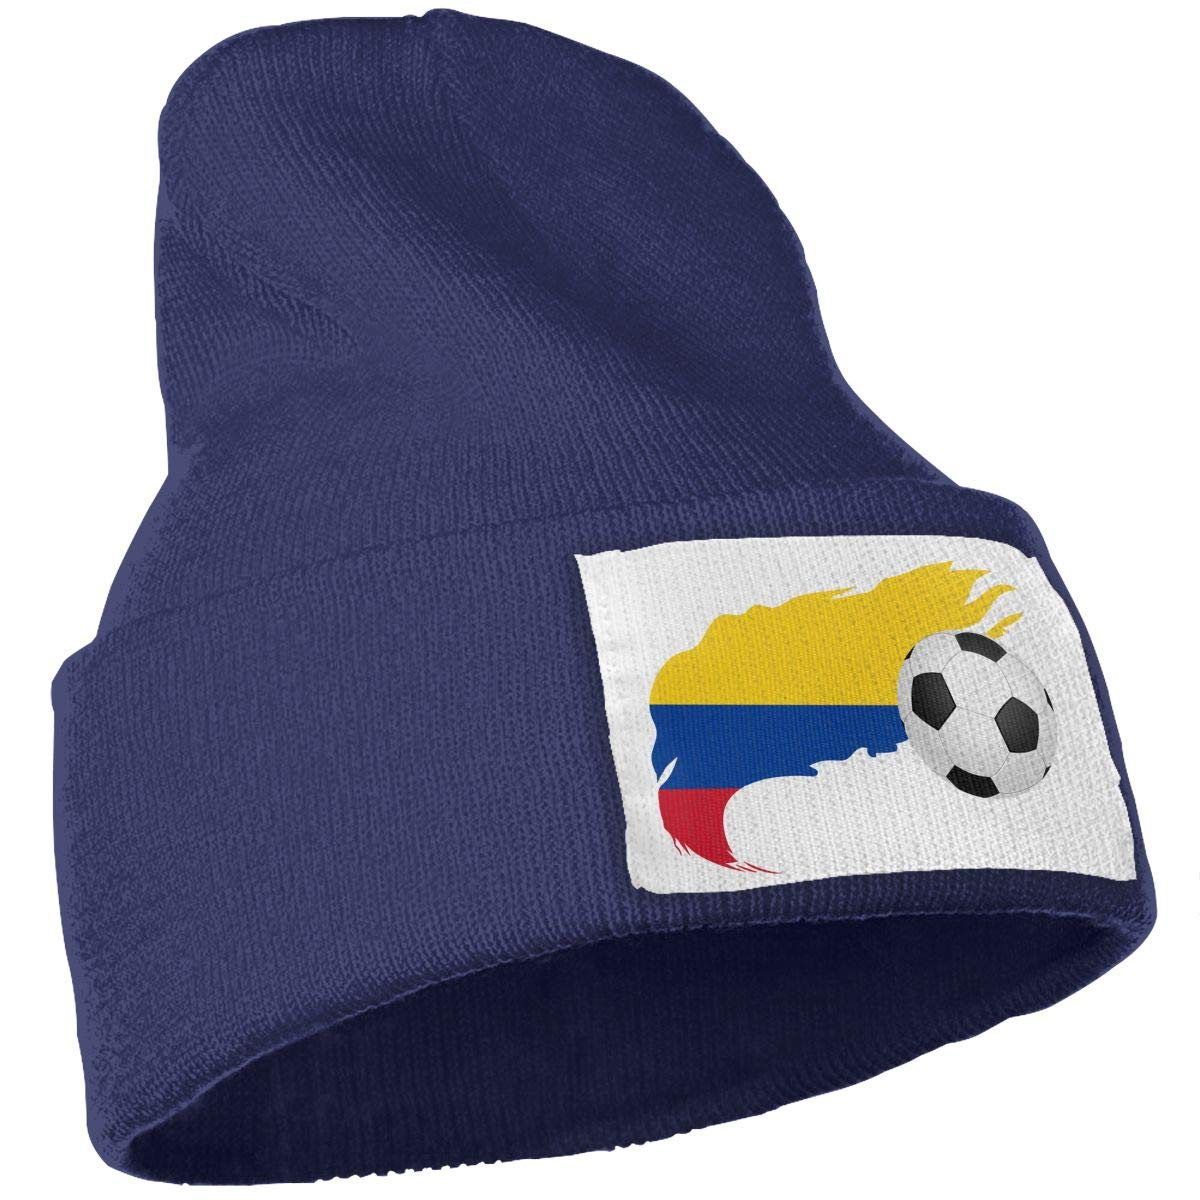 Soccer Ball with Colombia Flag Men /& Women Skull Caps Winter Warm Stretchy Knitting Beanie Hats